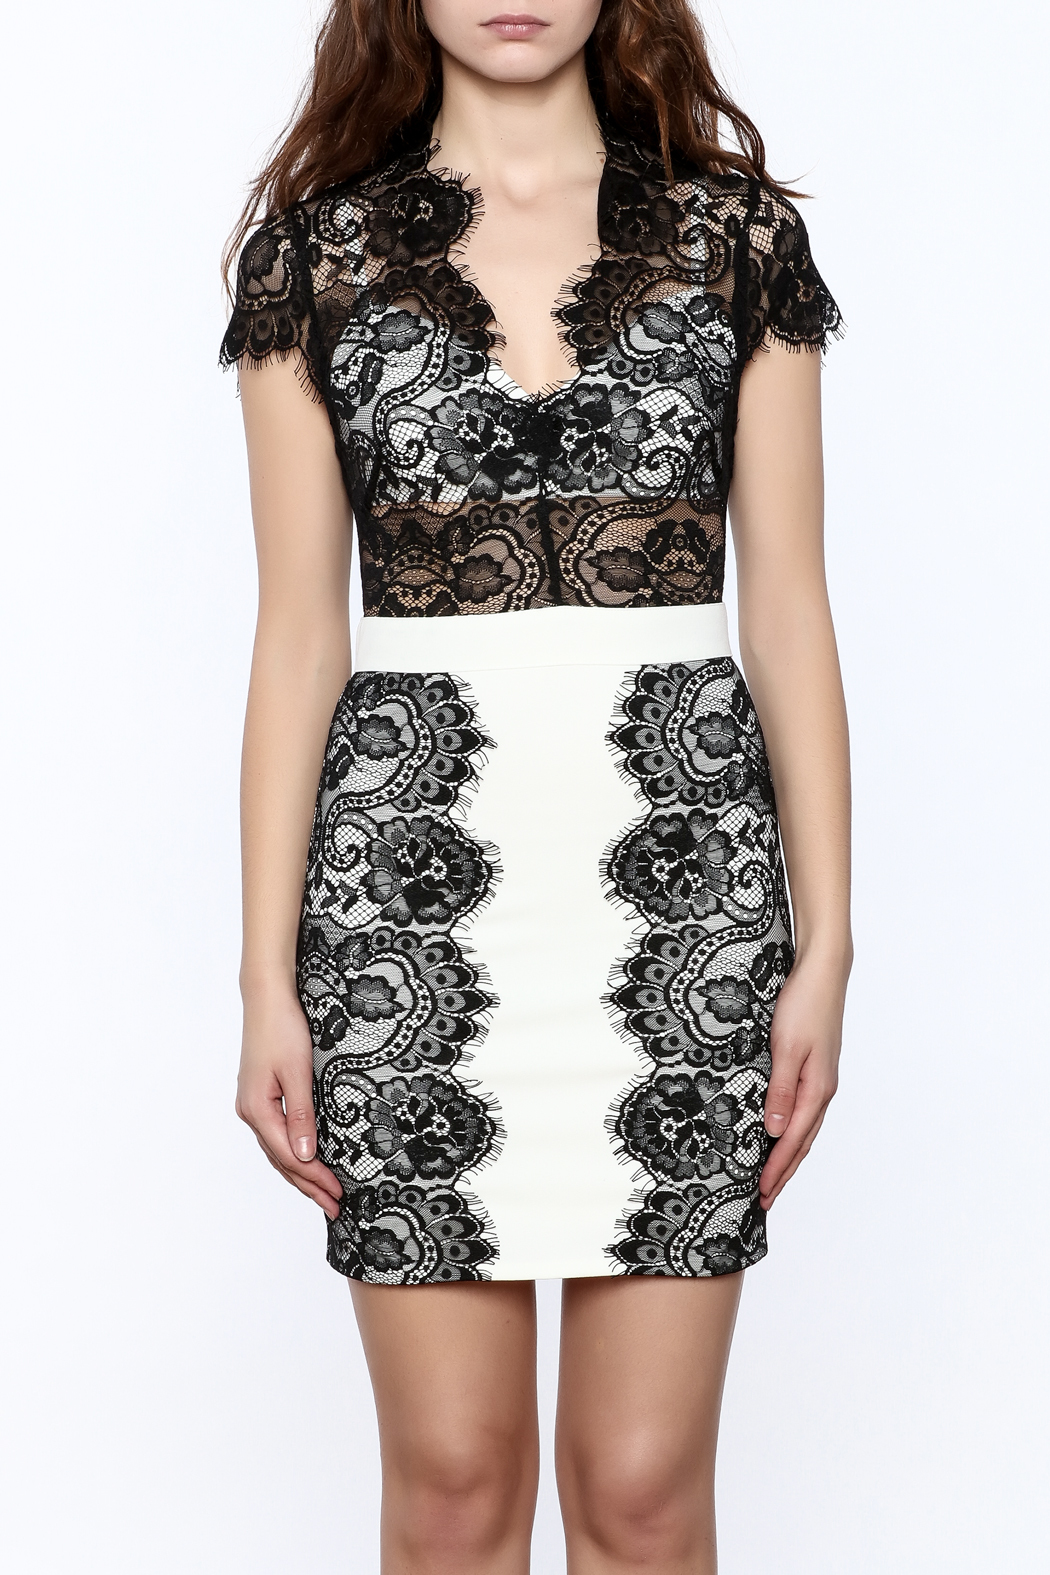 Ark & Co. Sheer Top Lace Dress - Side Cropped Image